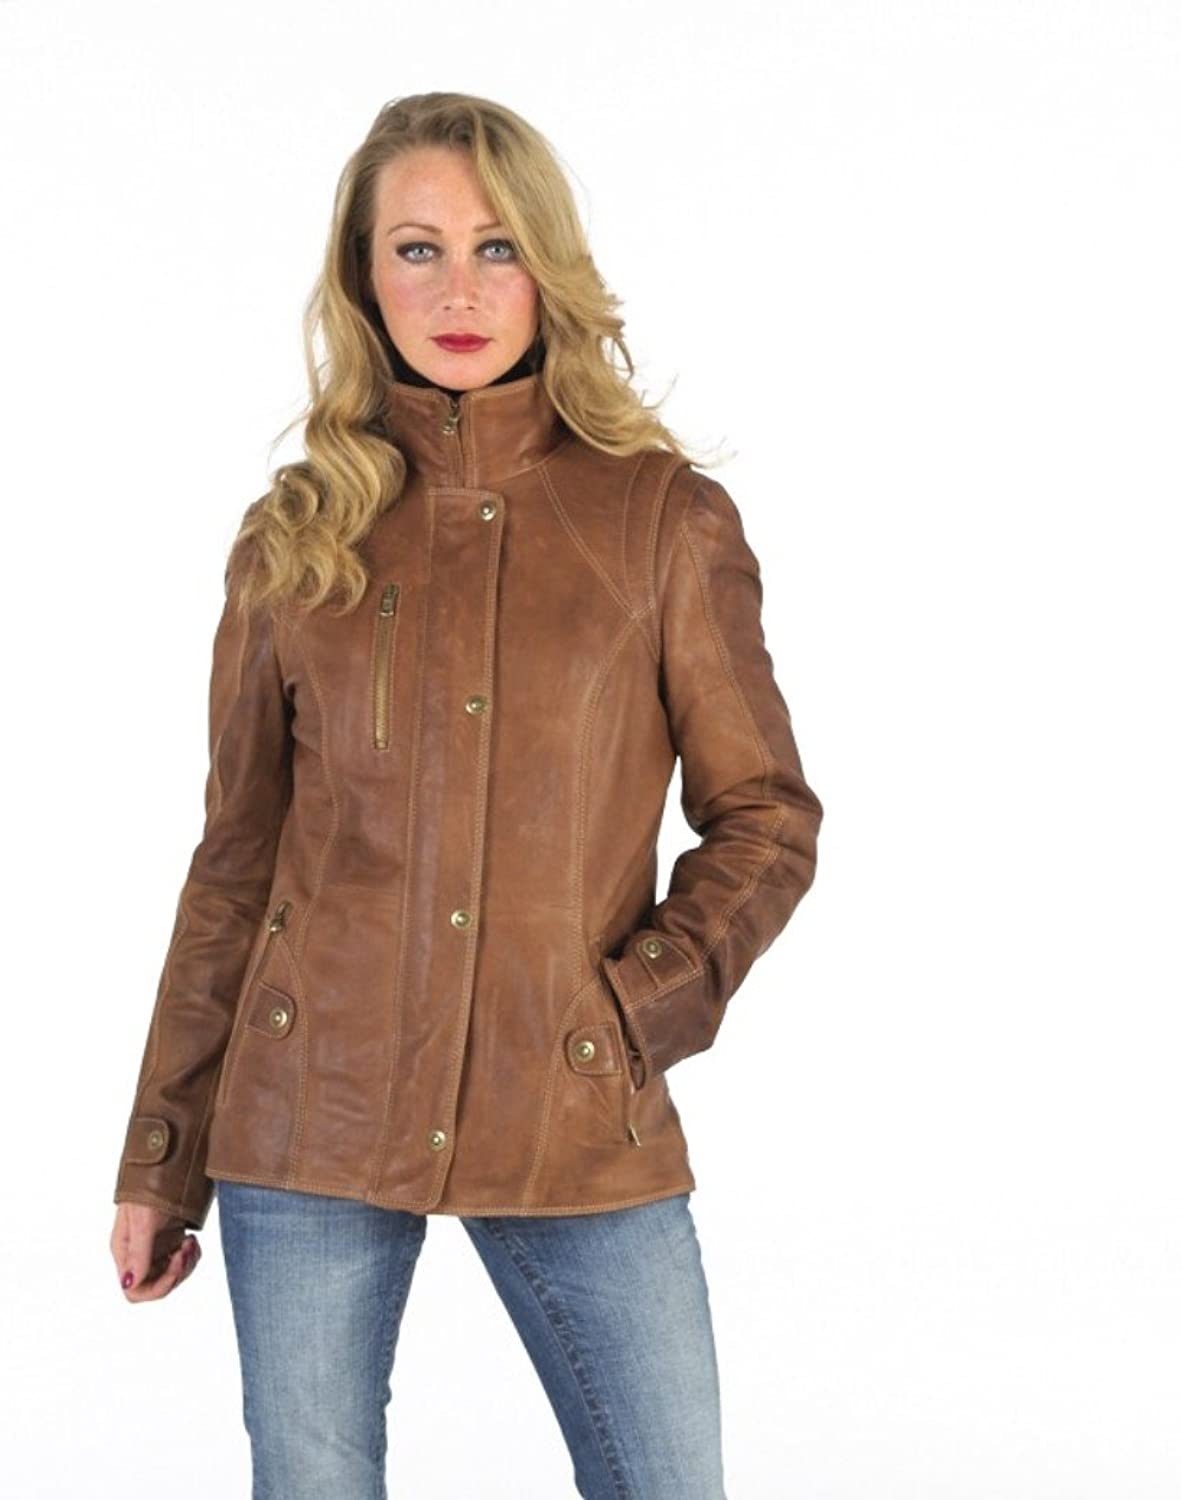 World of Leather Lambskin Genuine Leather Jacket Short Blazer Casual Tan